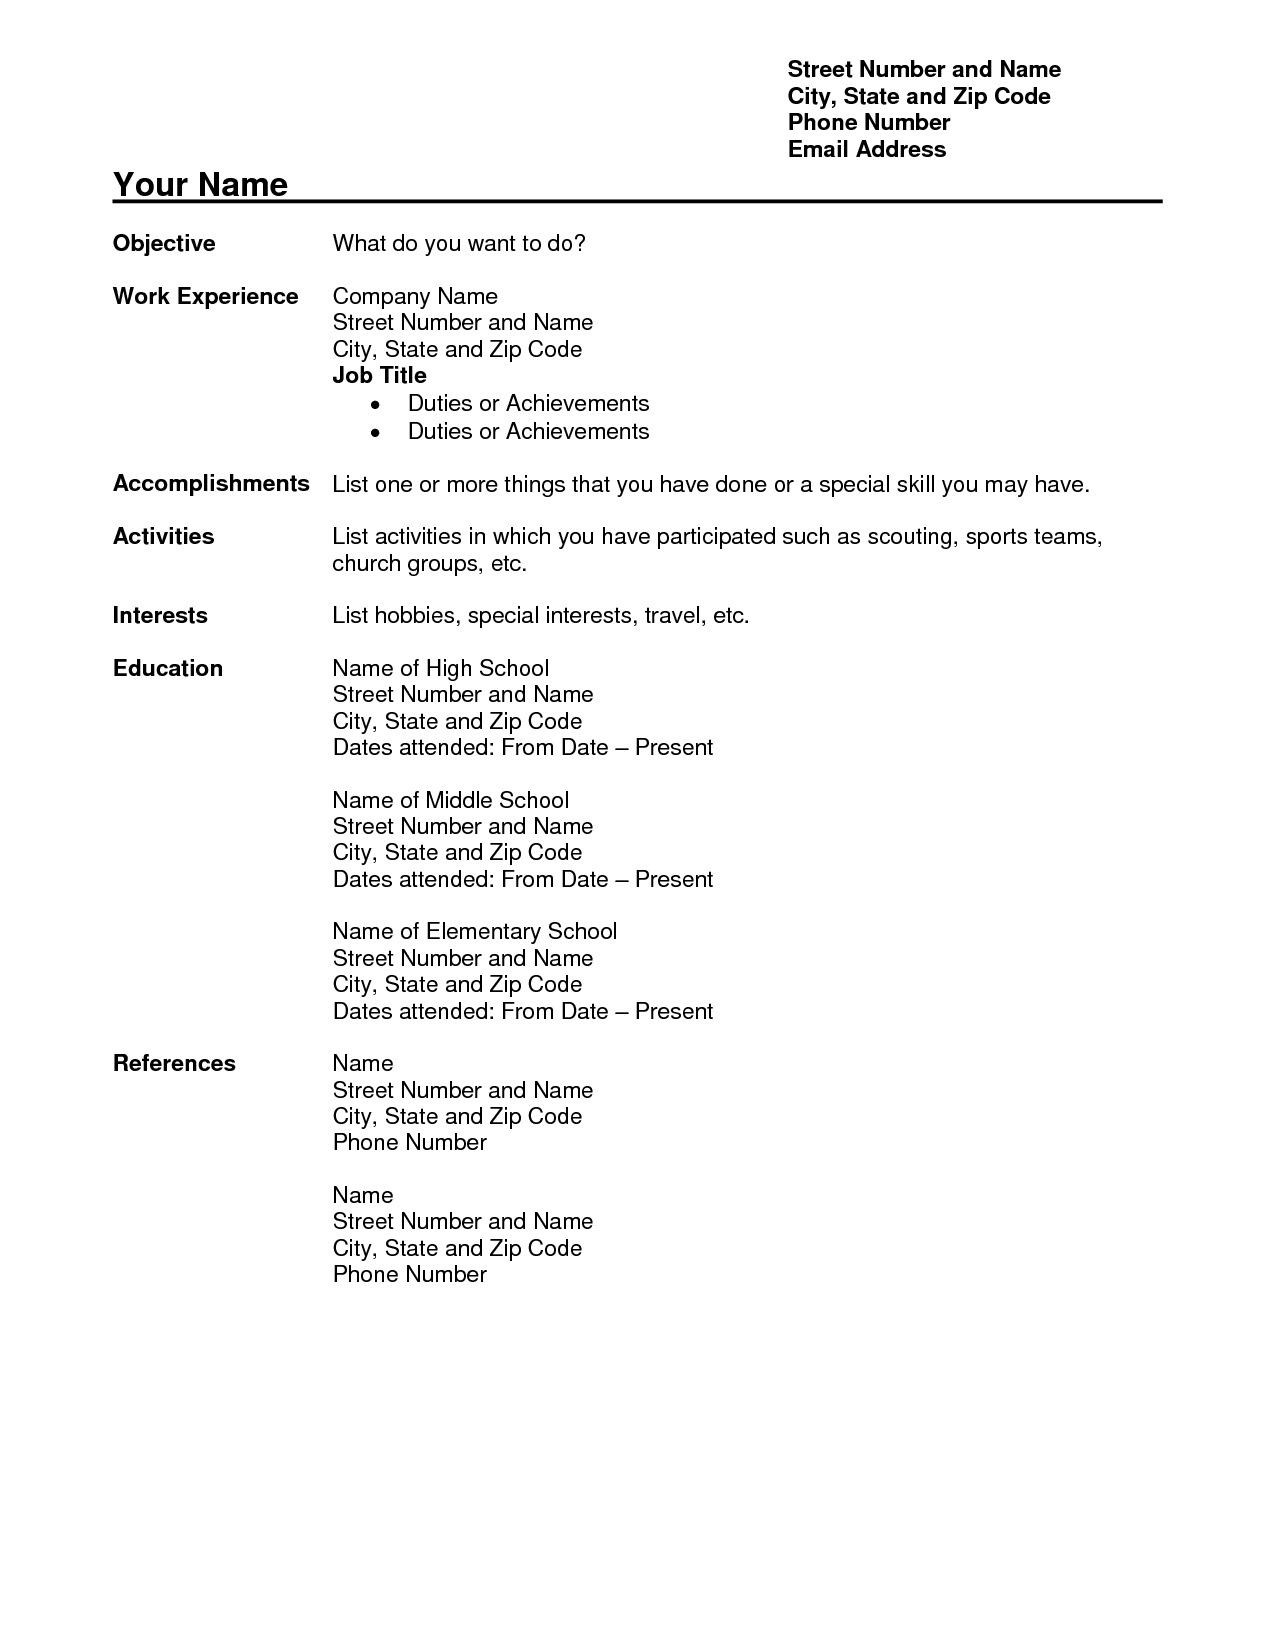 Free Teacher Resume Templates Download Free Teacher Resume Templates  Download, Free Teacher Resume Templates Microsoft  Download A Resume Template